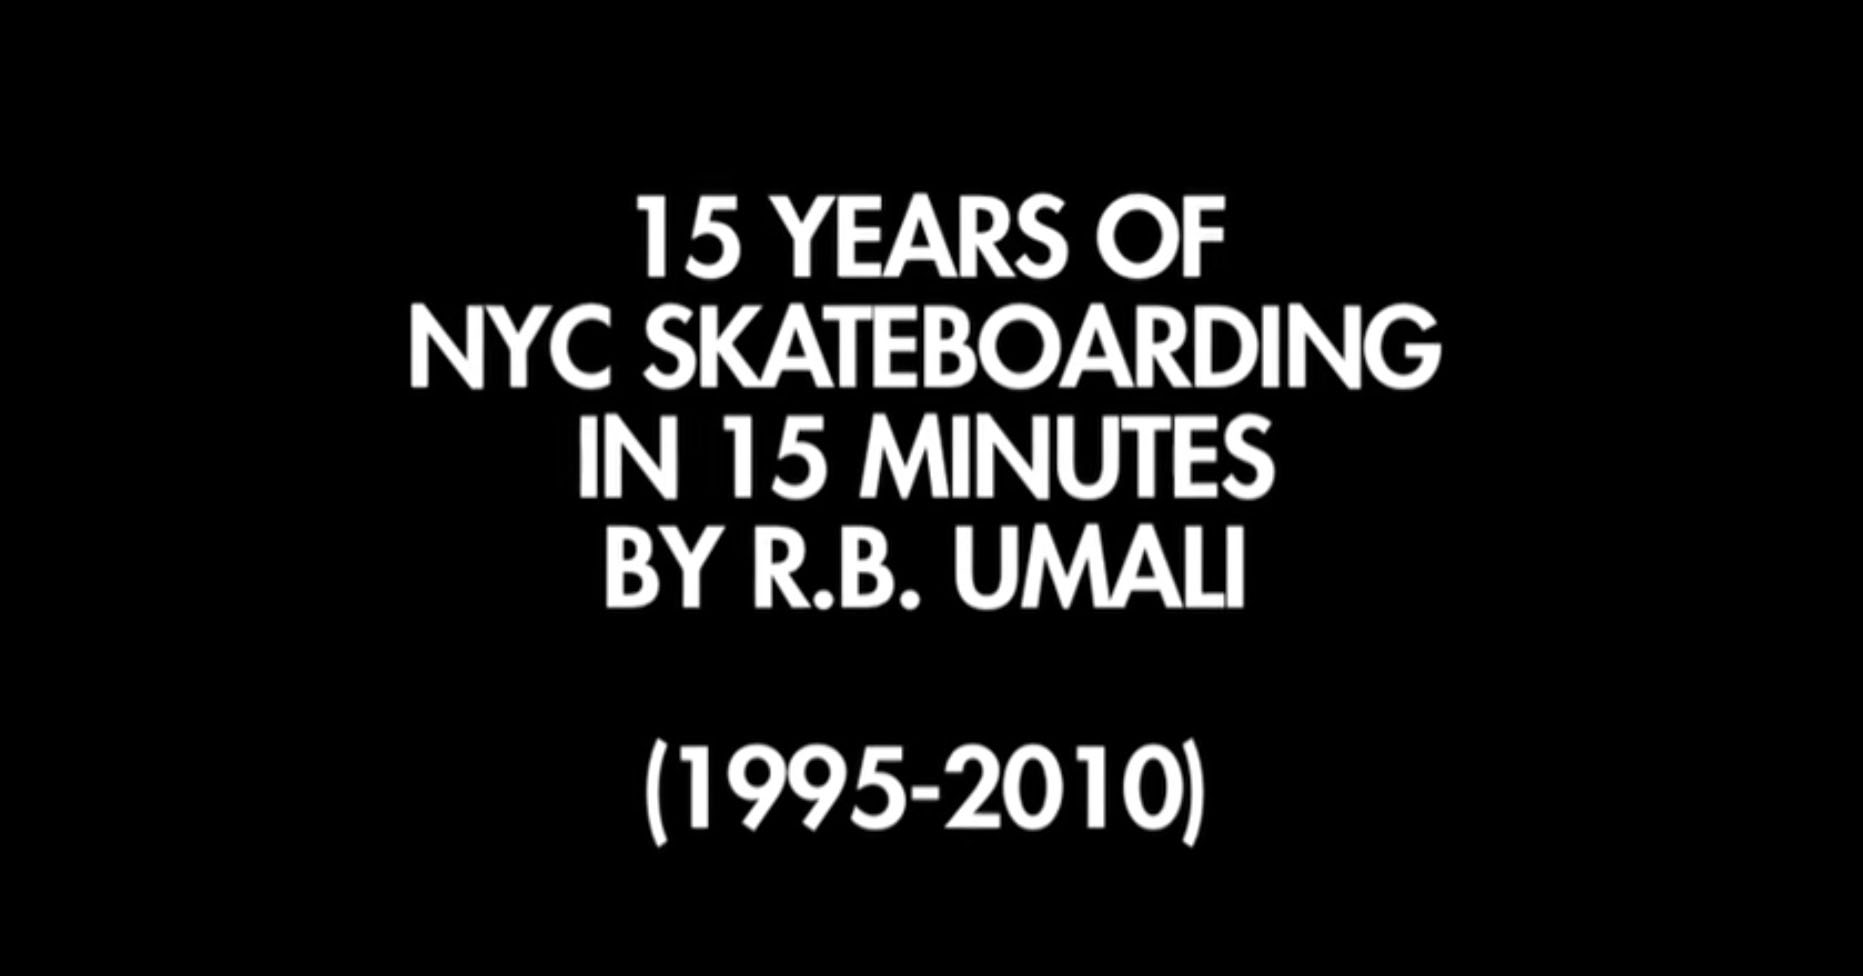 R.B. Umali – 15 Yrs of NYC Skateboarding in 15 Min (1995 -2010)